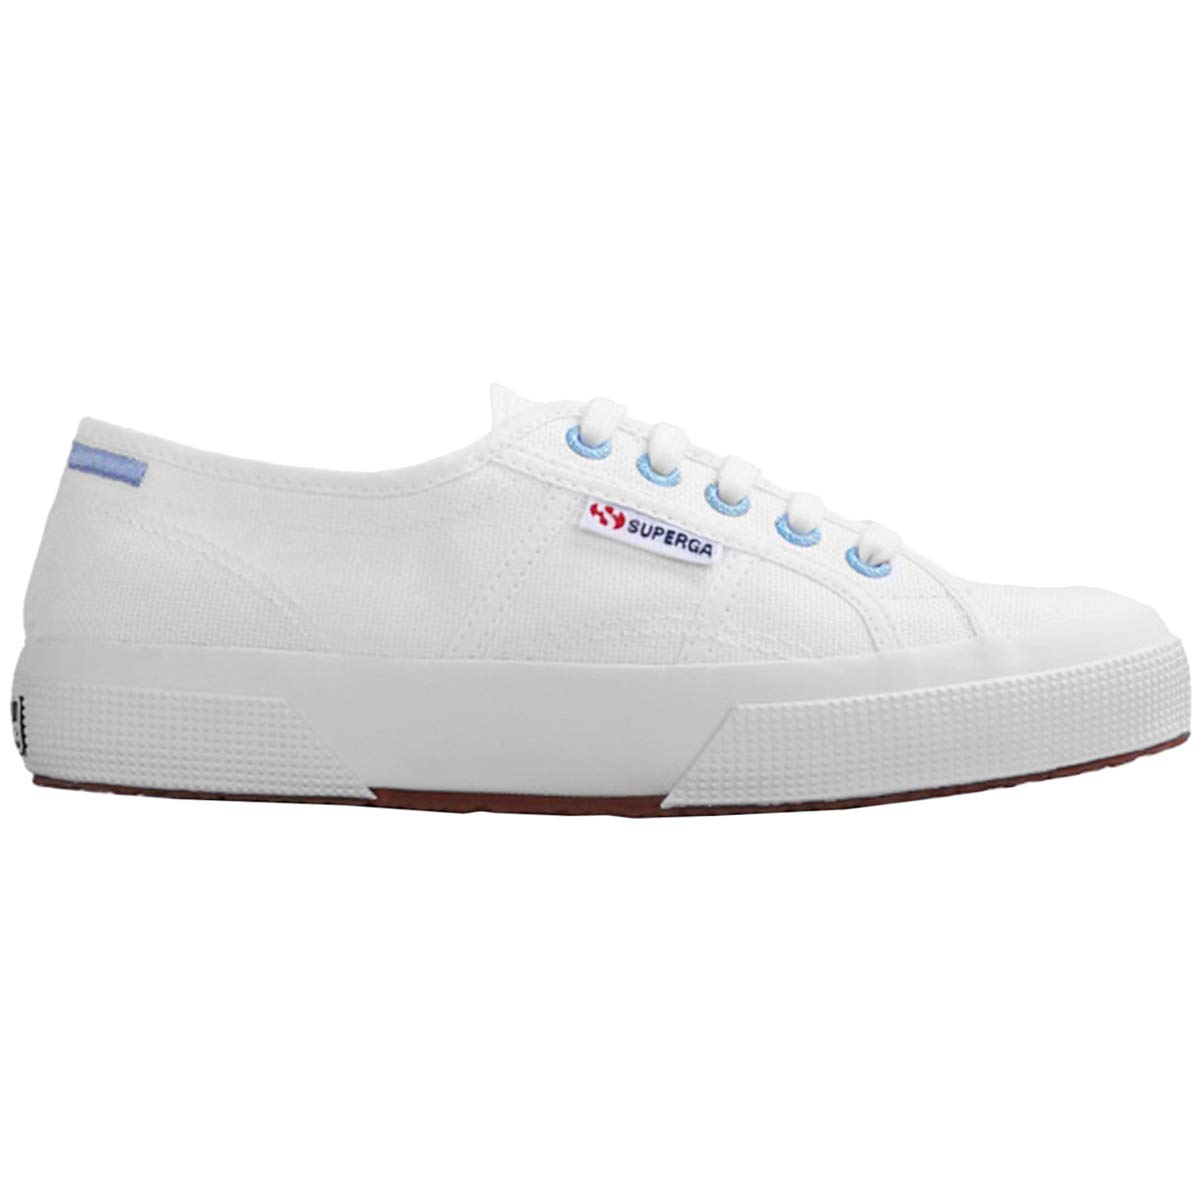 White Azure Erica Superga Womens 2750 Multicolour Details COTW Canvas Trainers